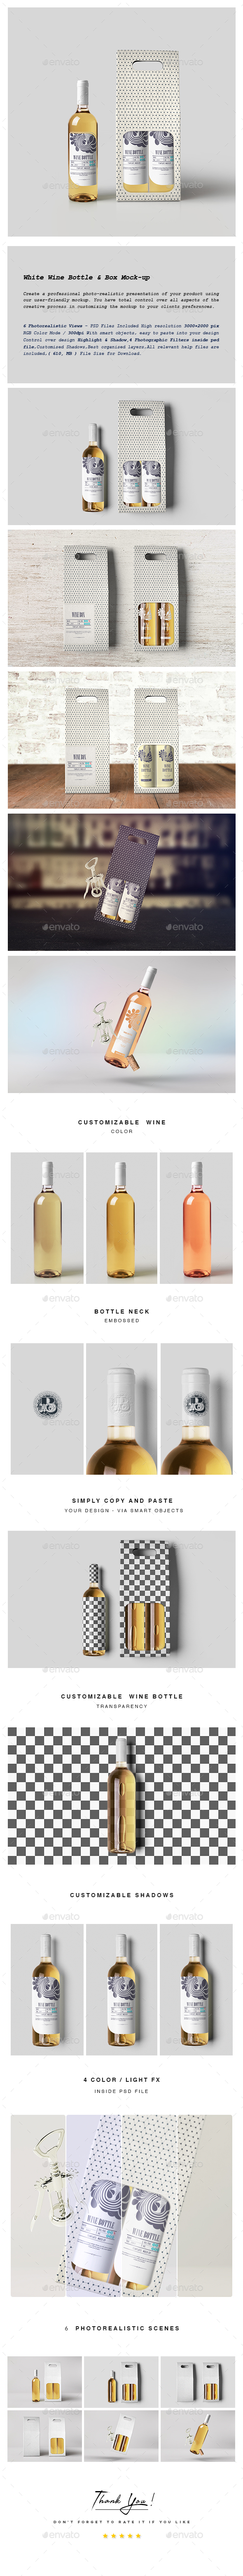 White Wine Bottle and Box Mock-up - Food and Drink Packaging